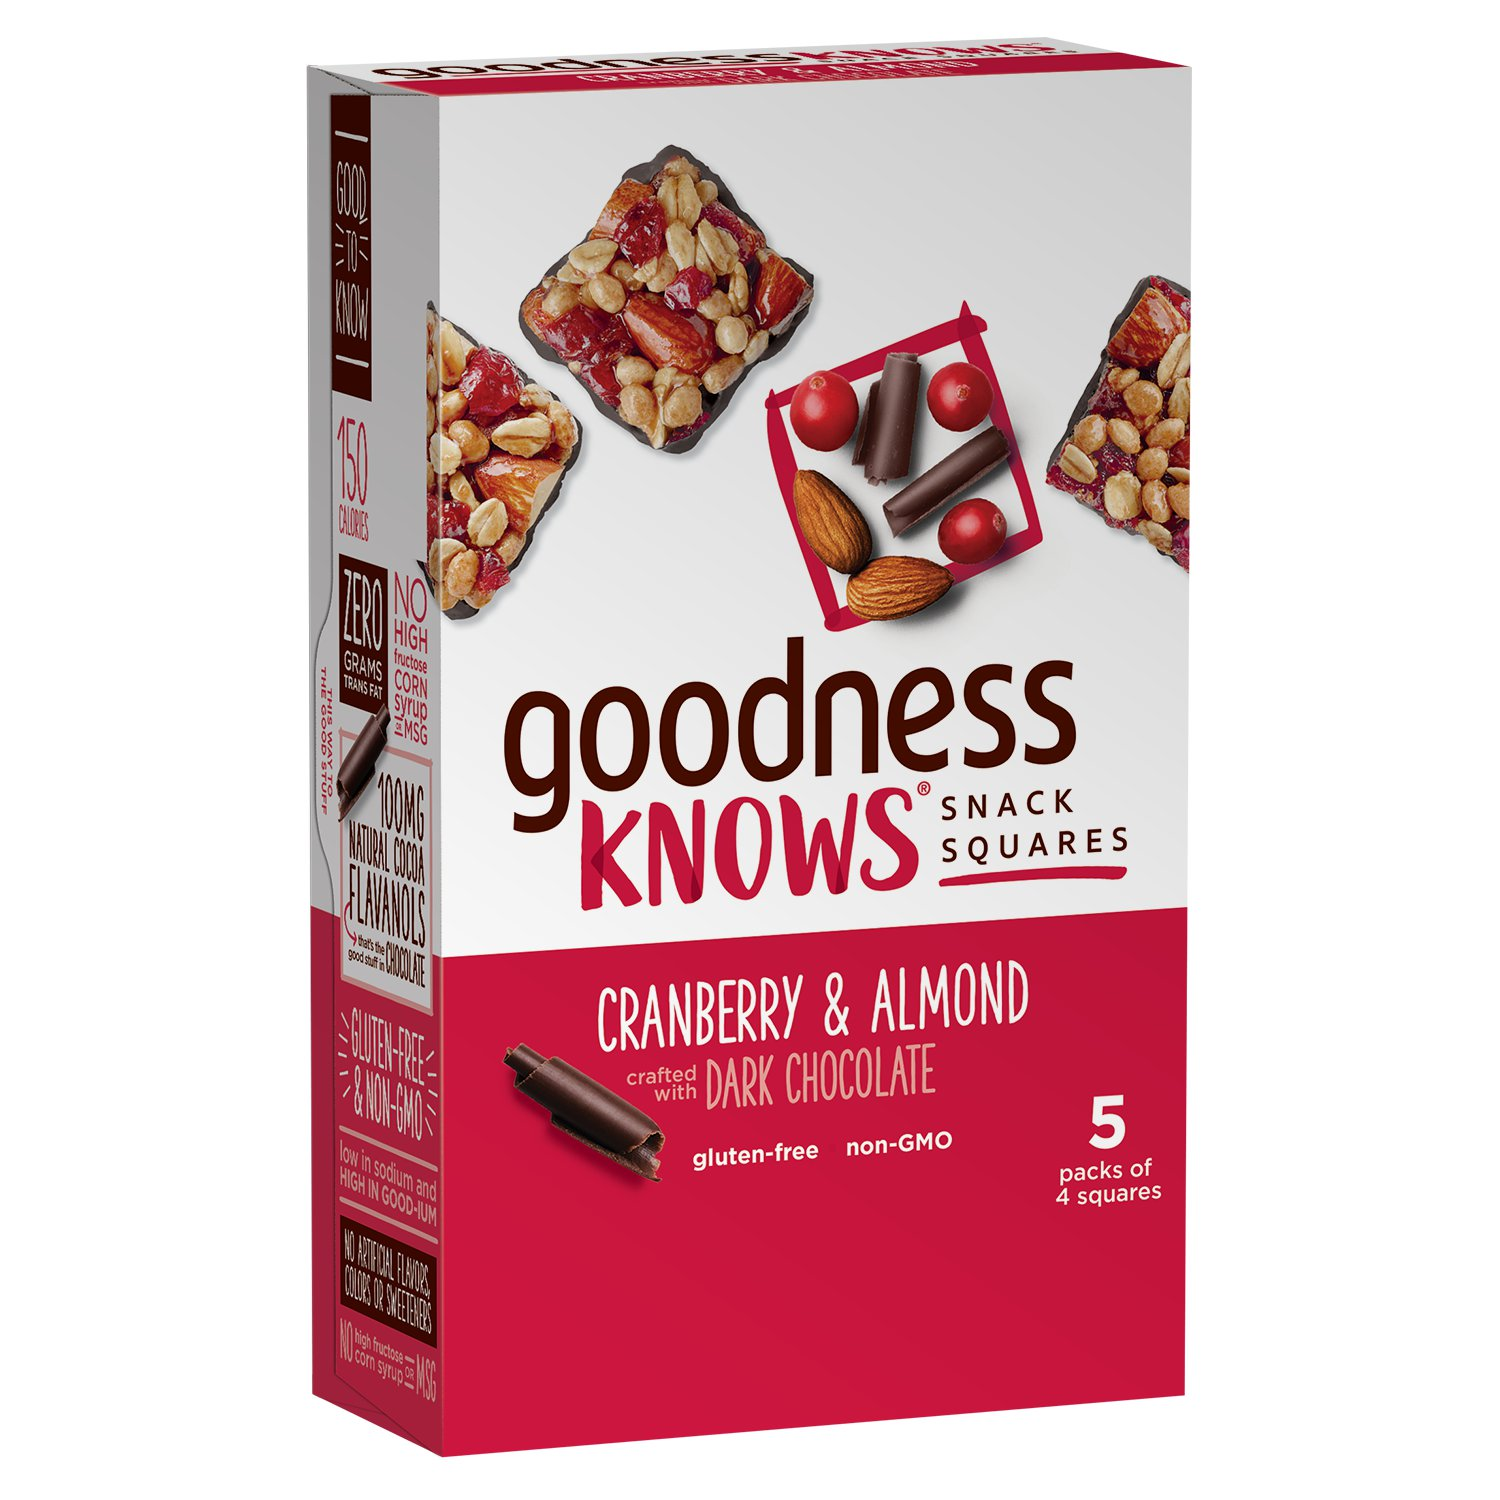 goodnessKNOWS Gluten Free Snack Square Bars Cranberry Almond & Dark Chocolate Box, 5 Pack